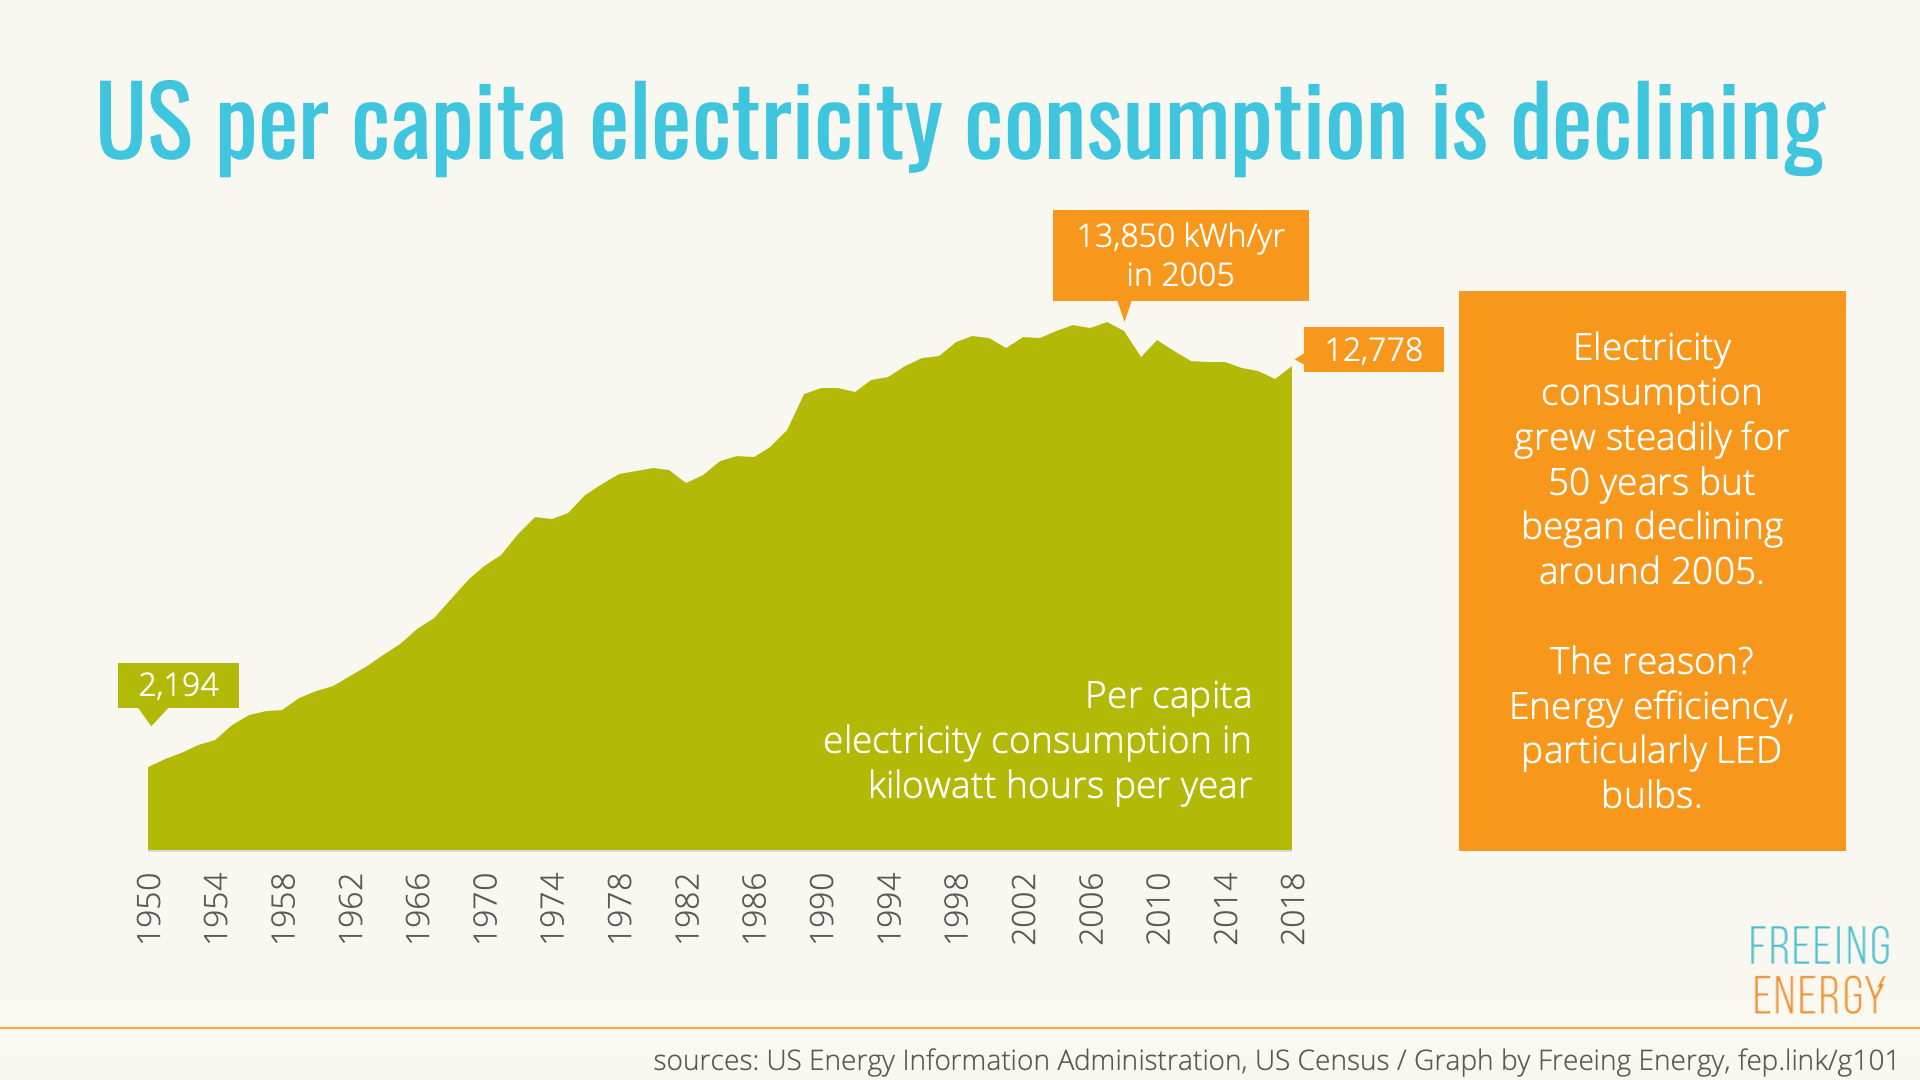 Graph showing US per capita electricity consumption shrinking